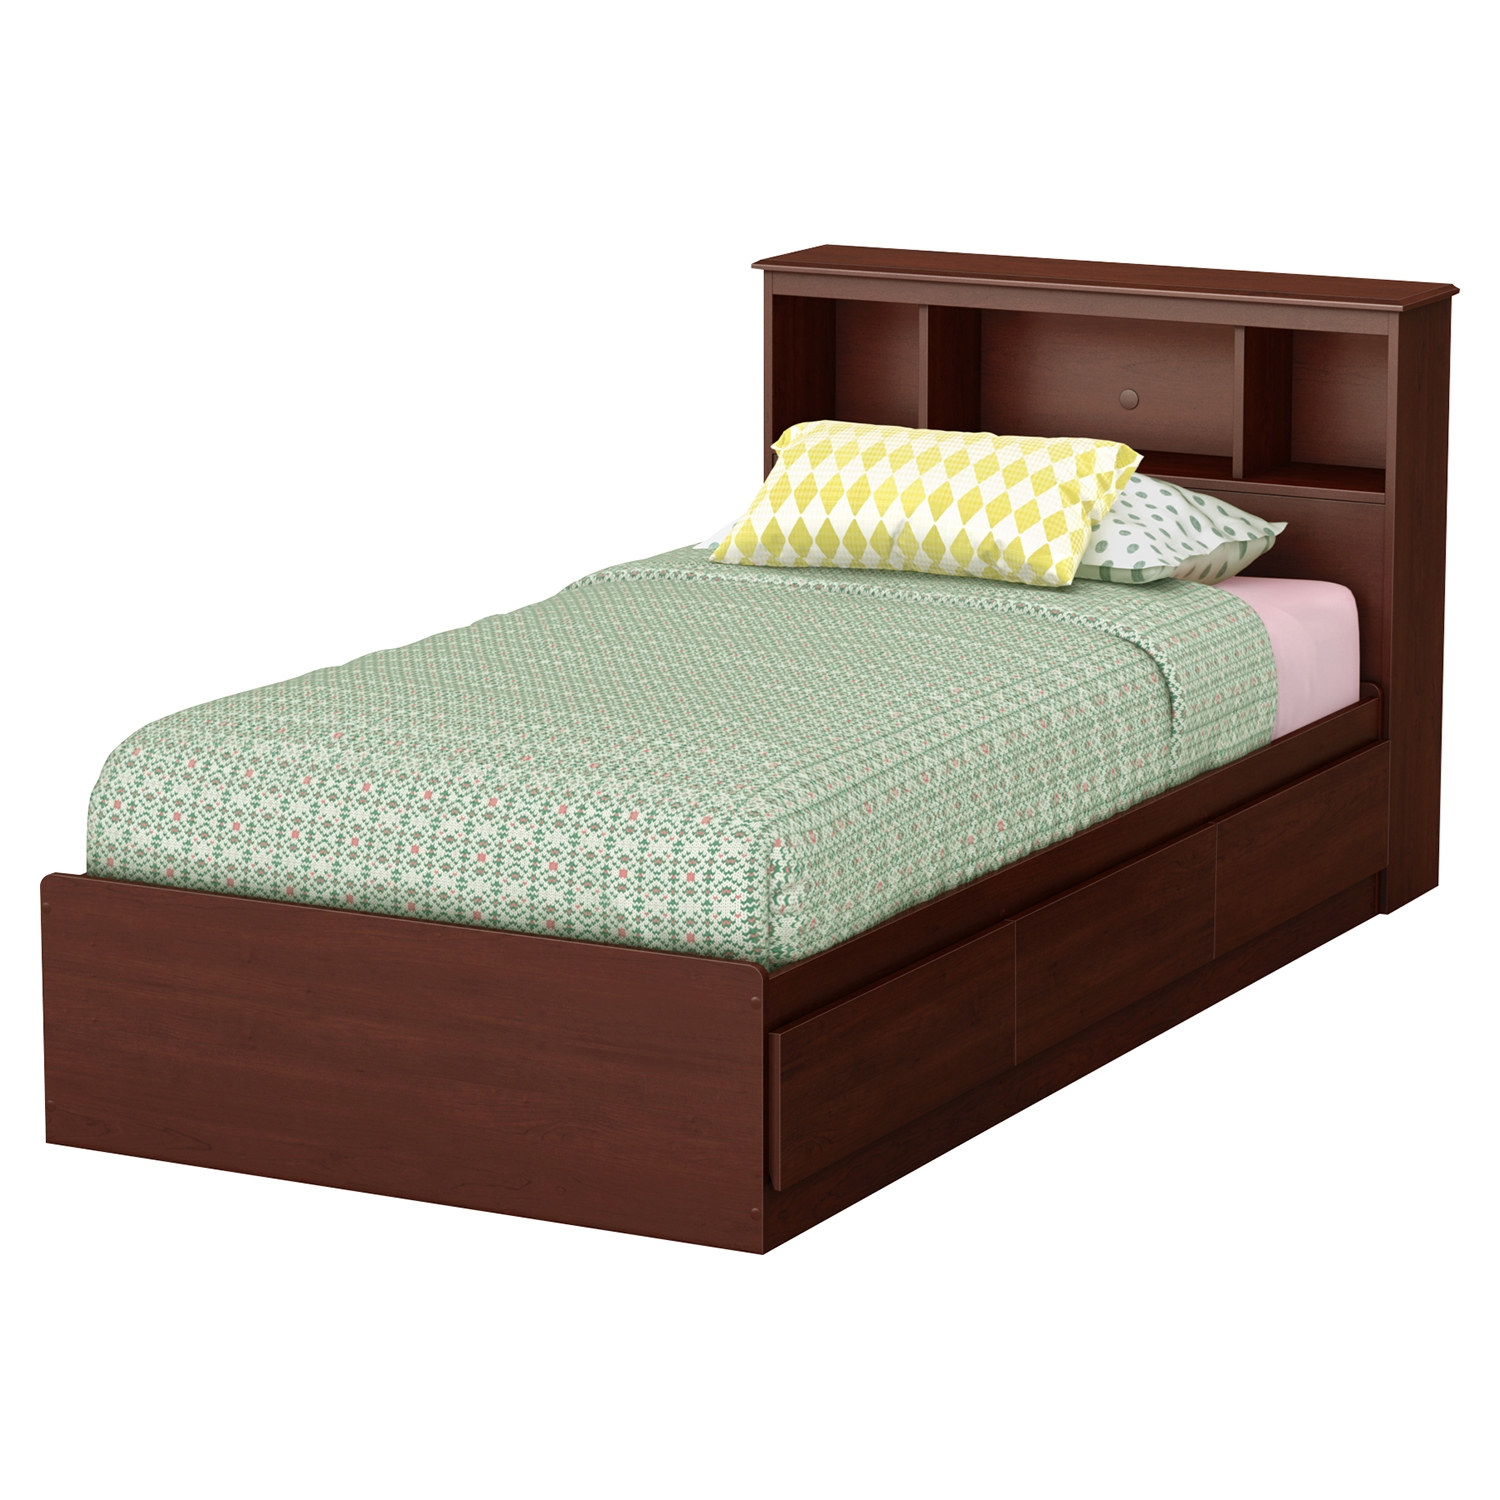 Little Treasures Twin Mates Bedroom Set - Bookcase Headboard, Royal Cherry - SS-10051-BR